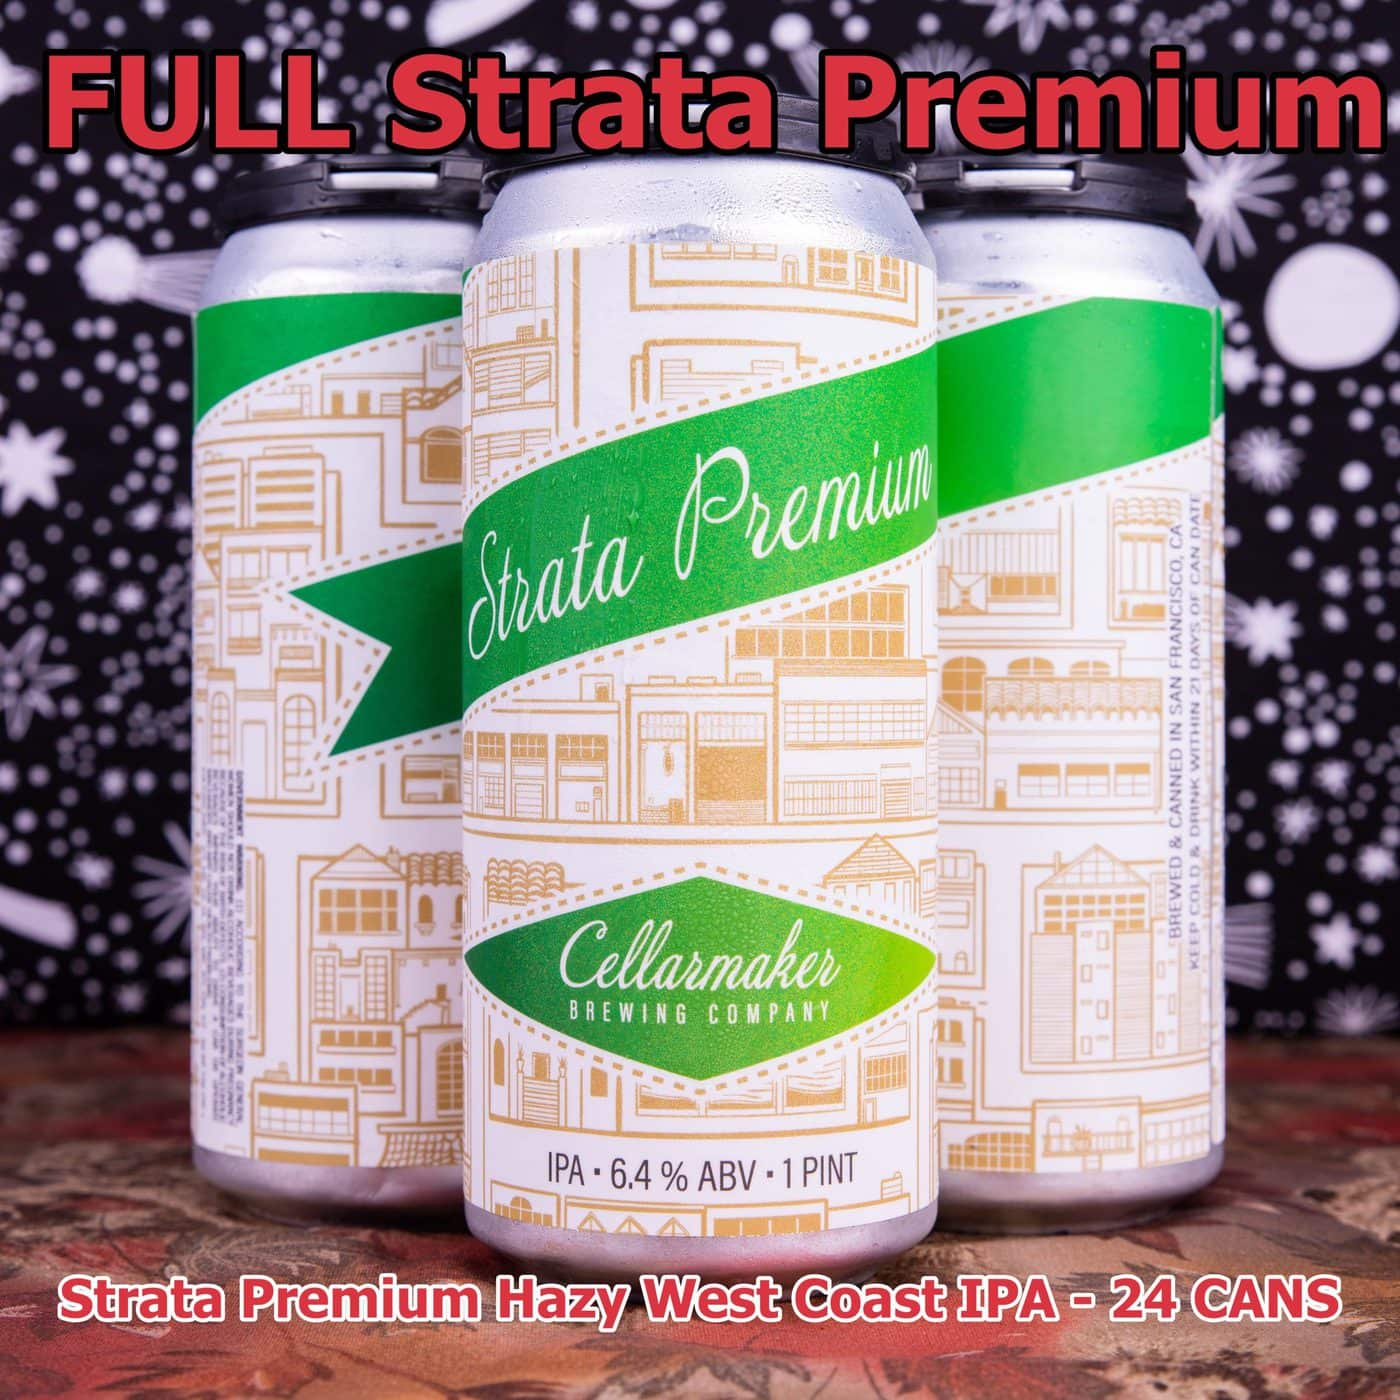 FULL CASE 24 CANS Strata Premium IPA ~ Shipping Out For Next Day Delivery On Tuesday 1/19*